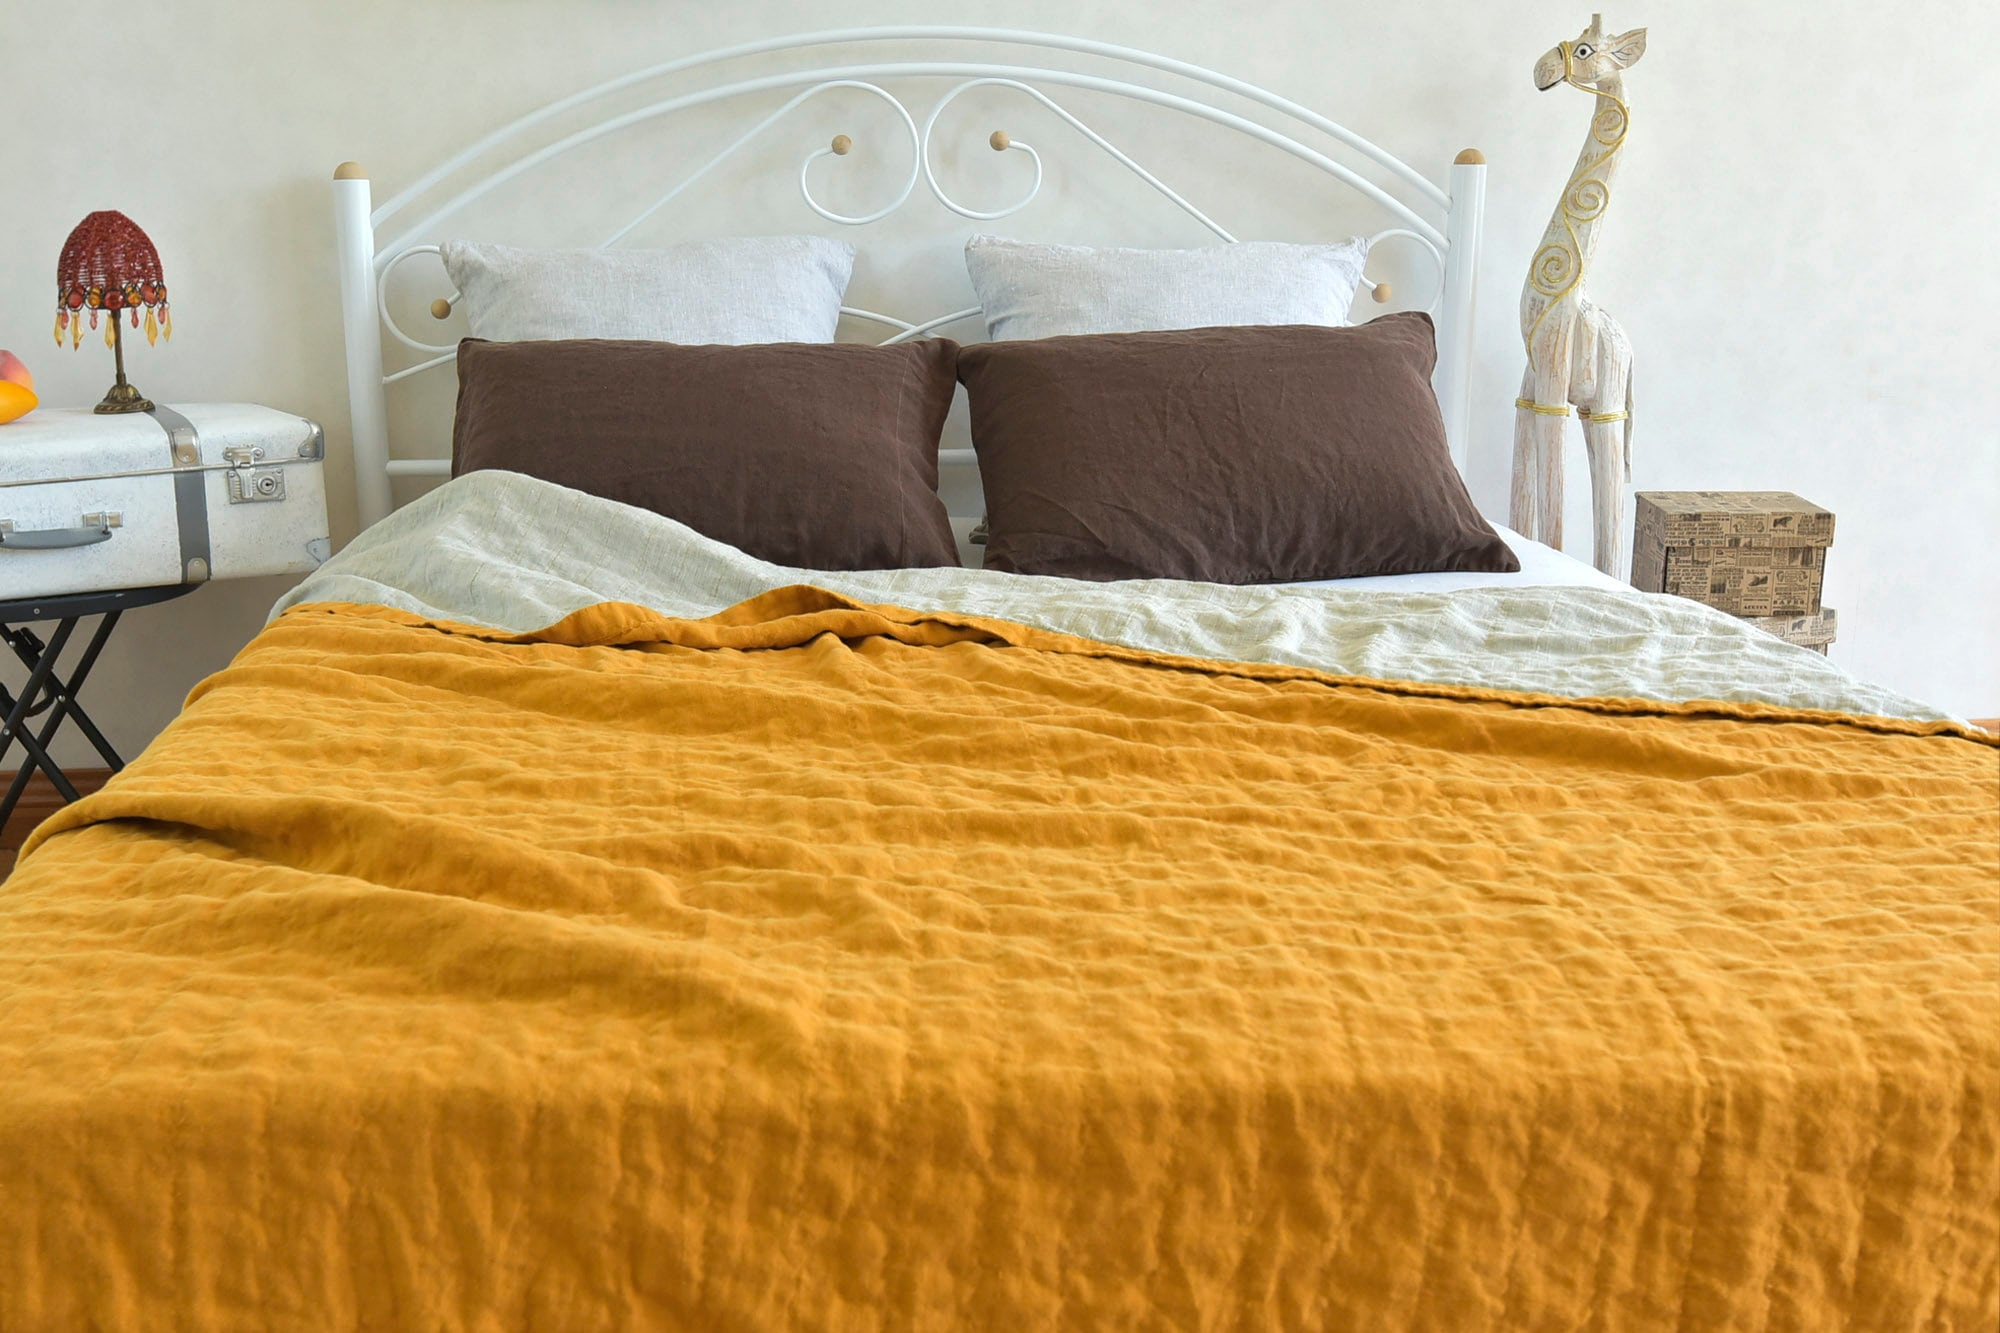 SUMMER Linen Organic Blanket Llax King Size Quilt StoneWashed Quilts Natural Llax Quilted Modern Eco Bedding Double Sided Bedspread Llax